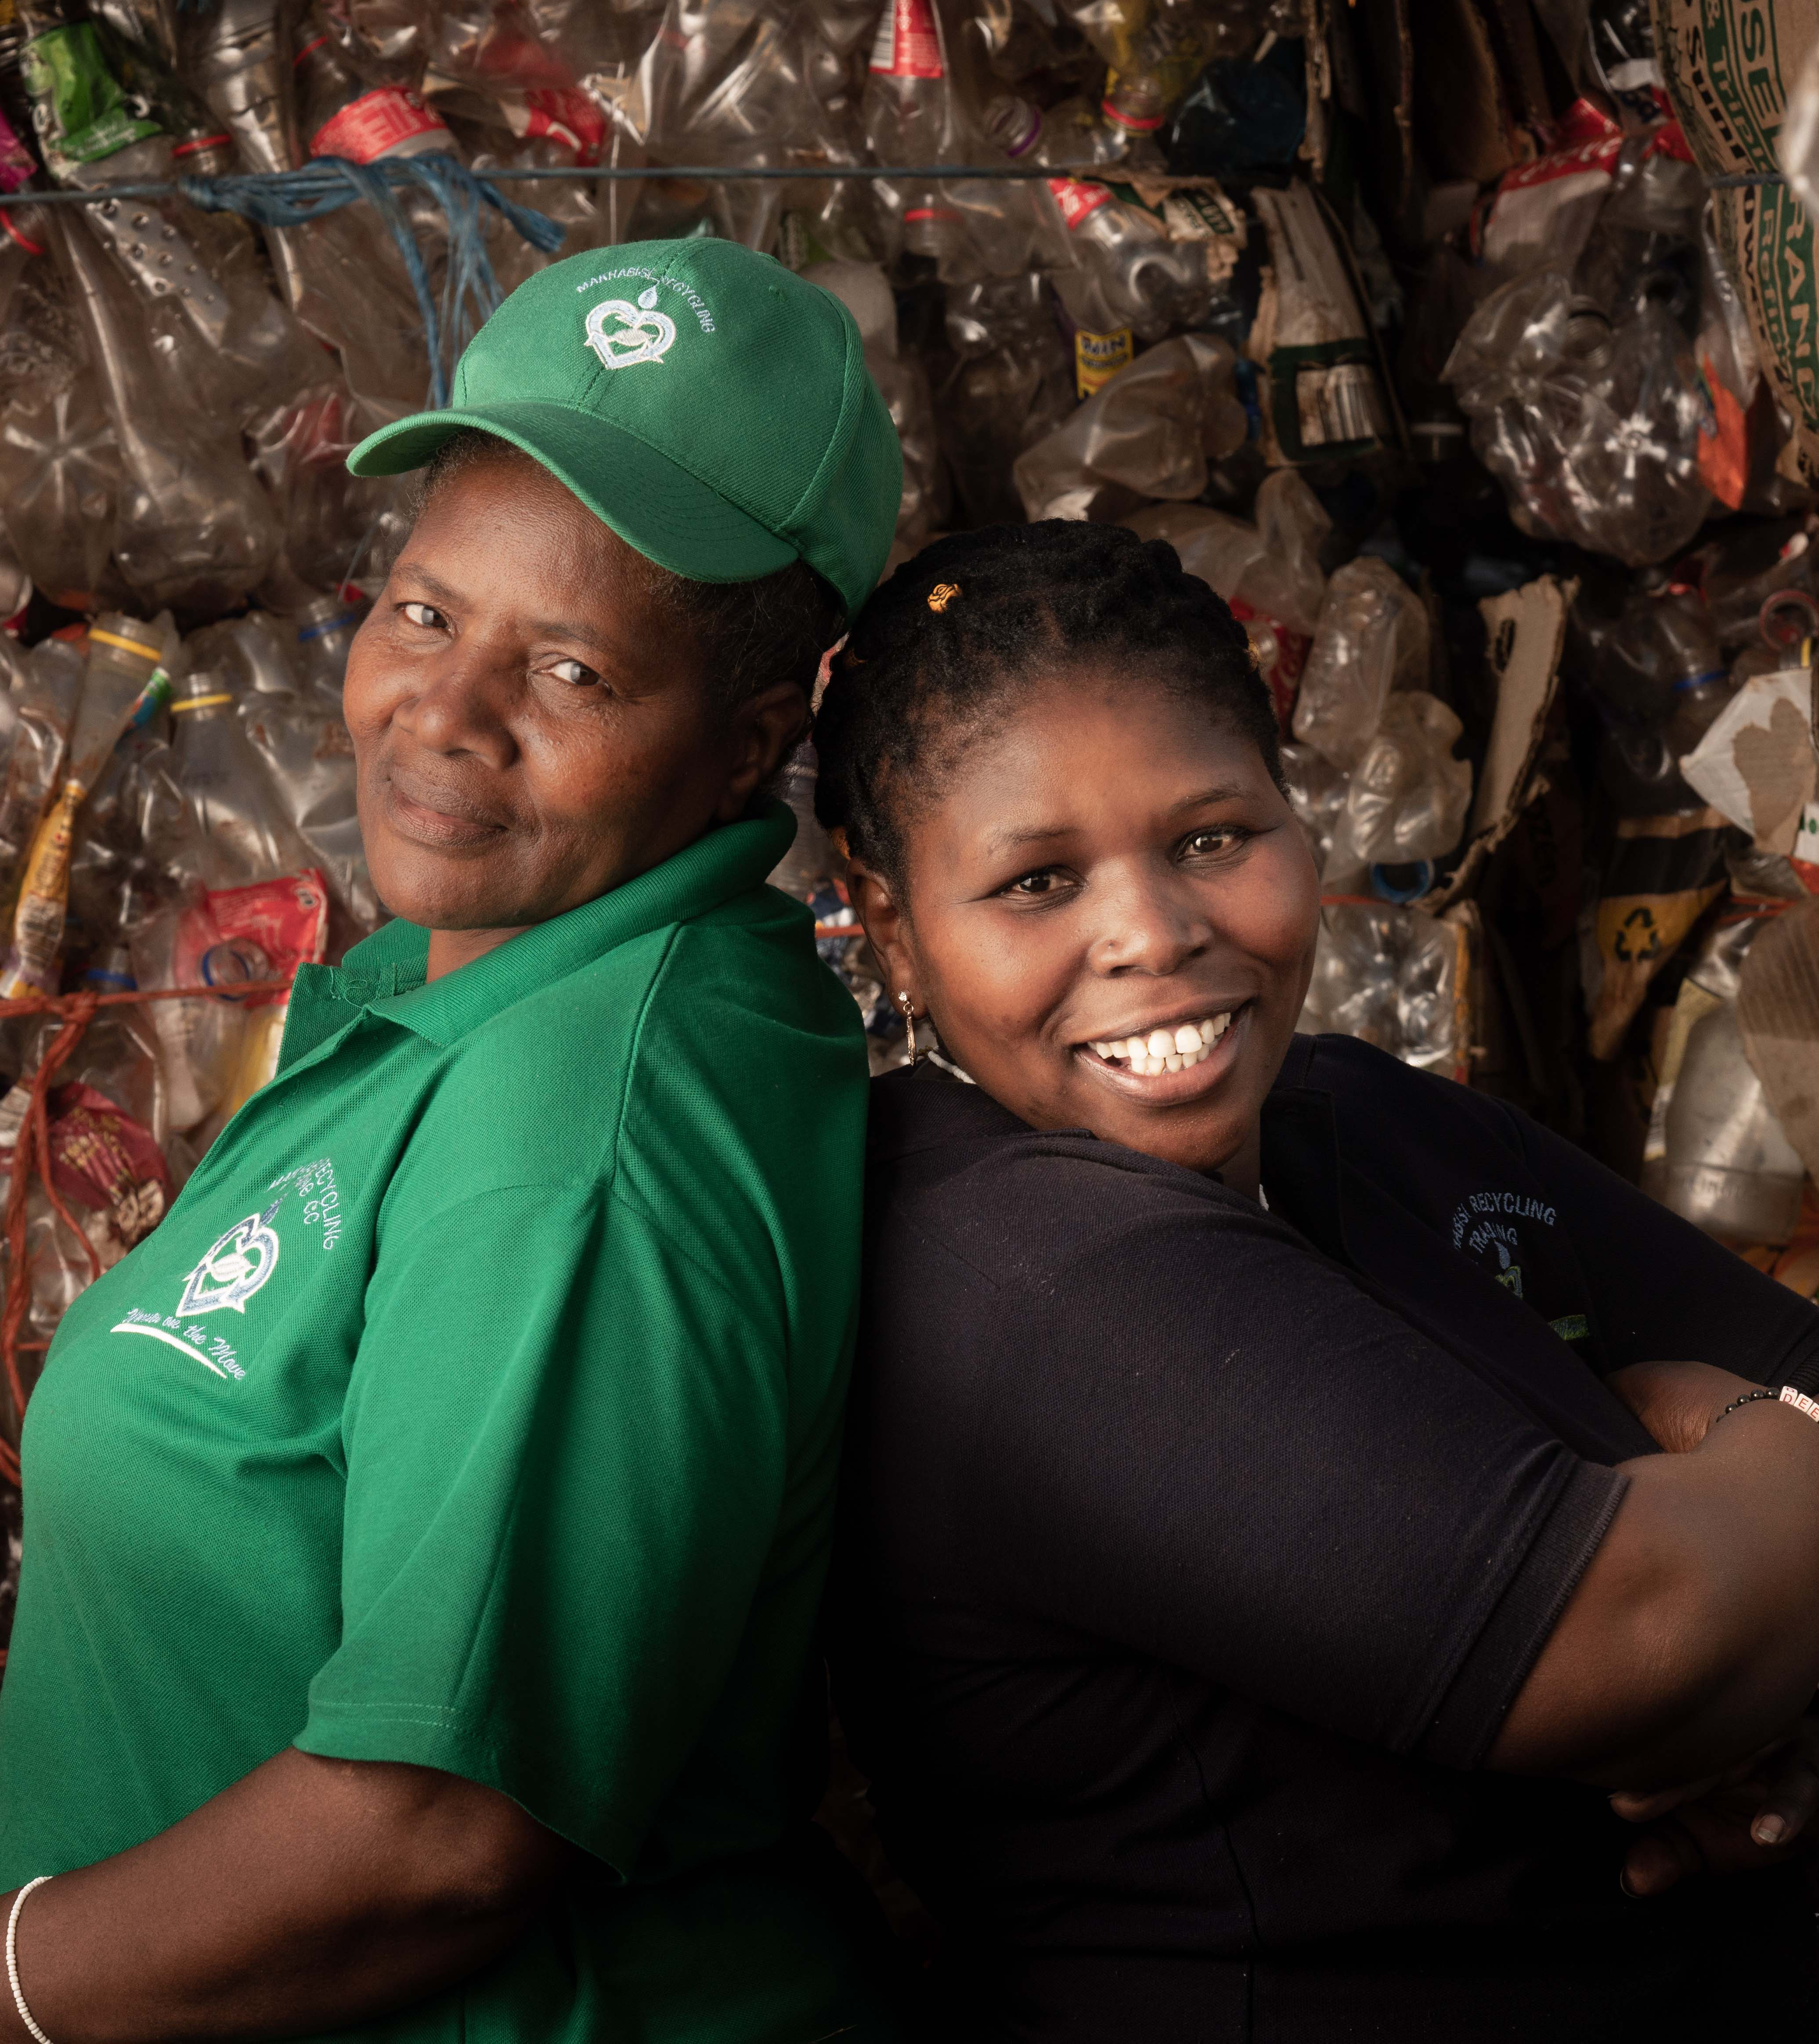 South Africa's 2019 recycling champions announced: Gauteng